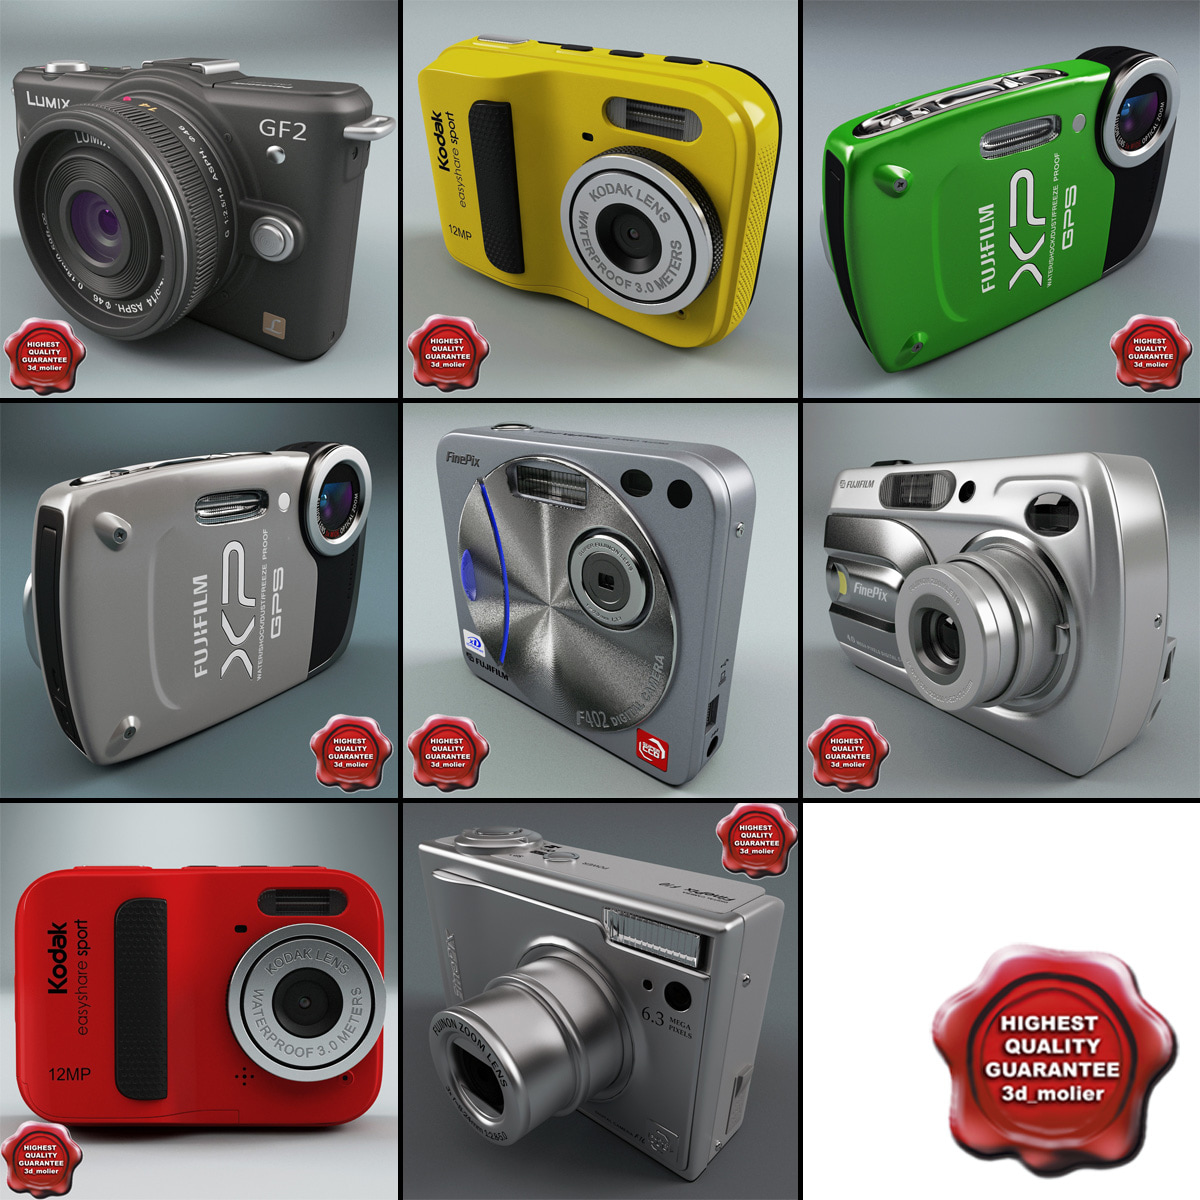 Digital_Cameras_Collection_V7_000.jpg